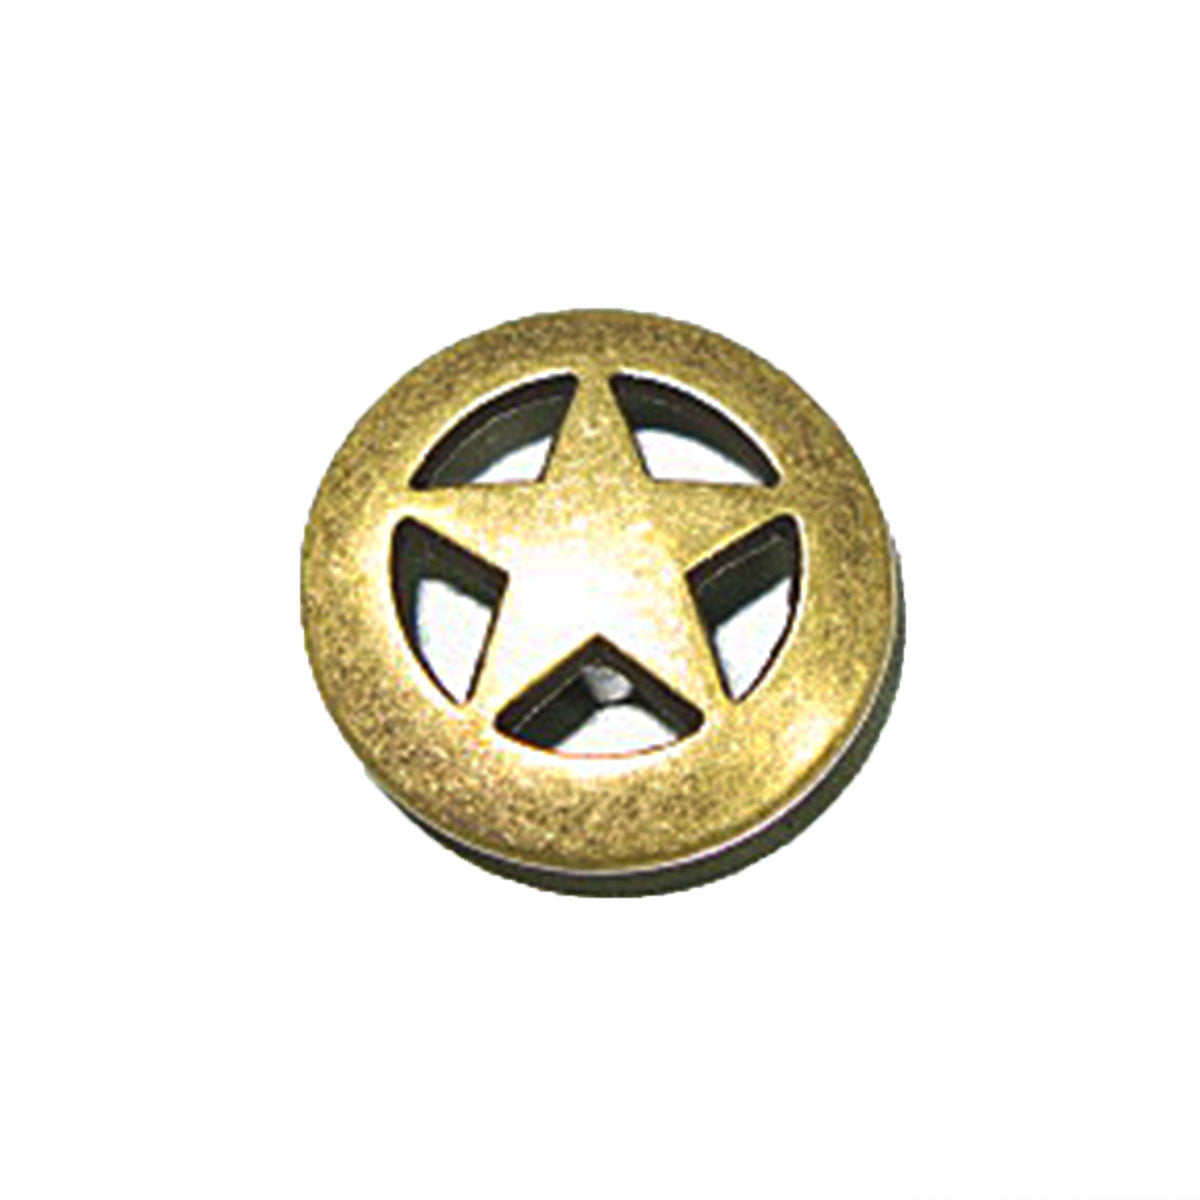 Ranger Star Concho Old Ranger Brass Finish - 3 Sizes